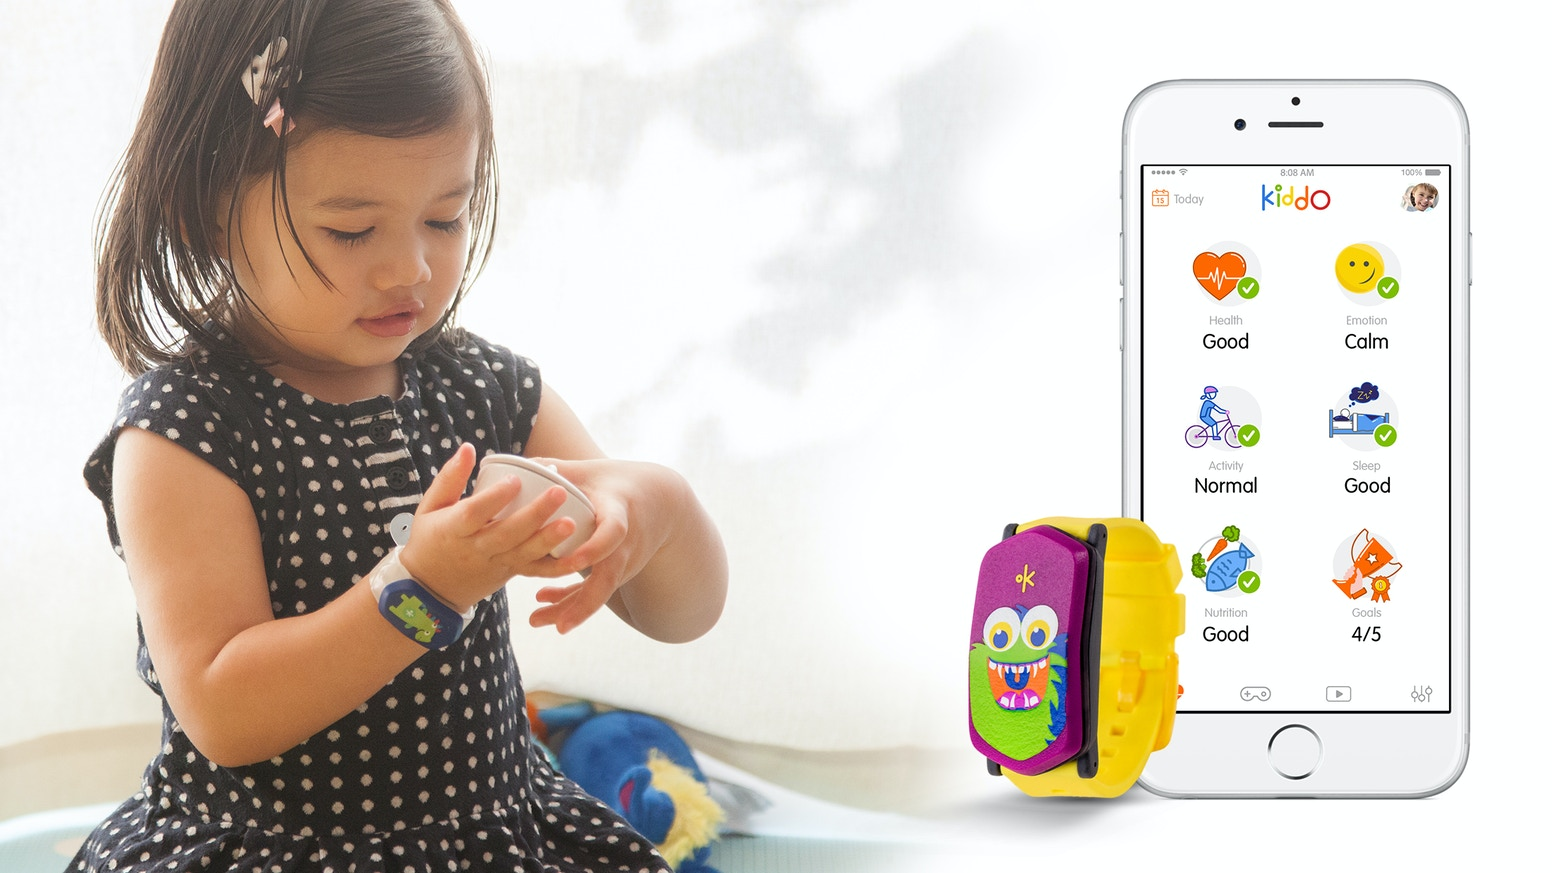 Smart band for young kids that monitors health while they play